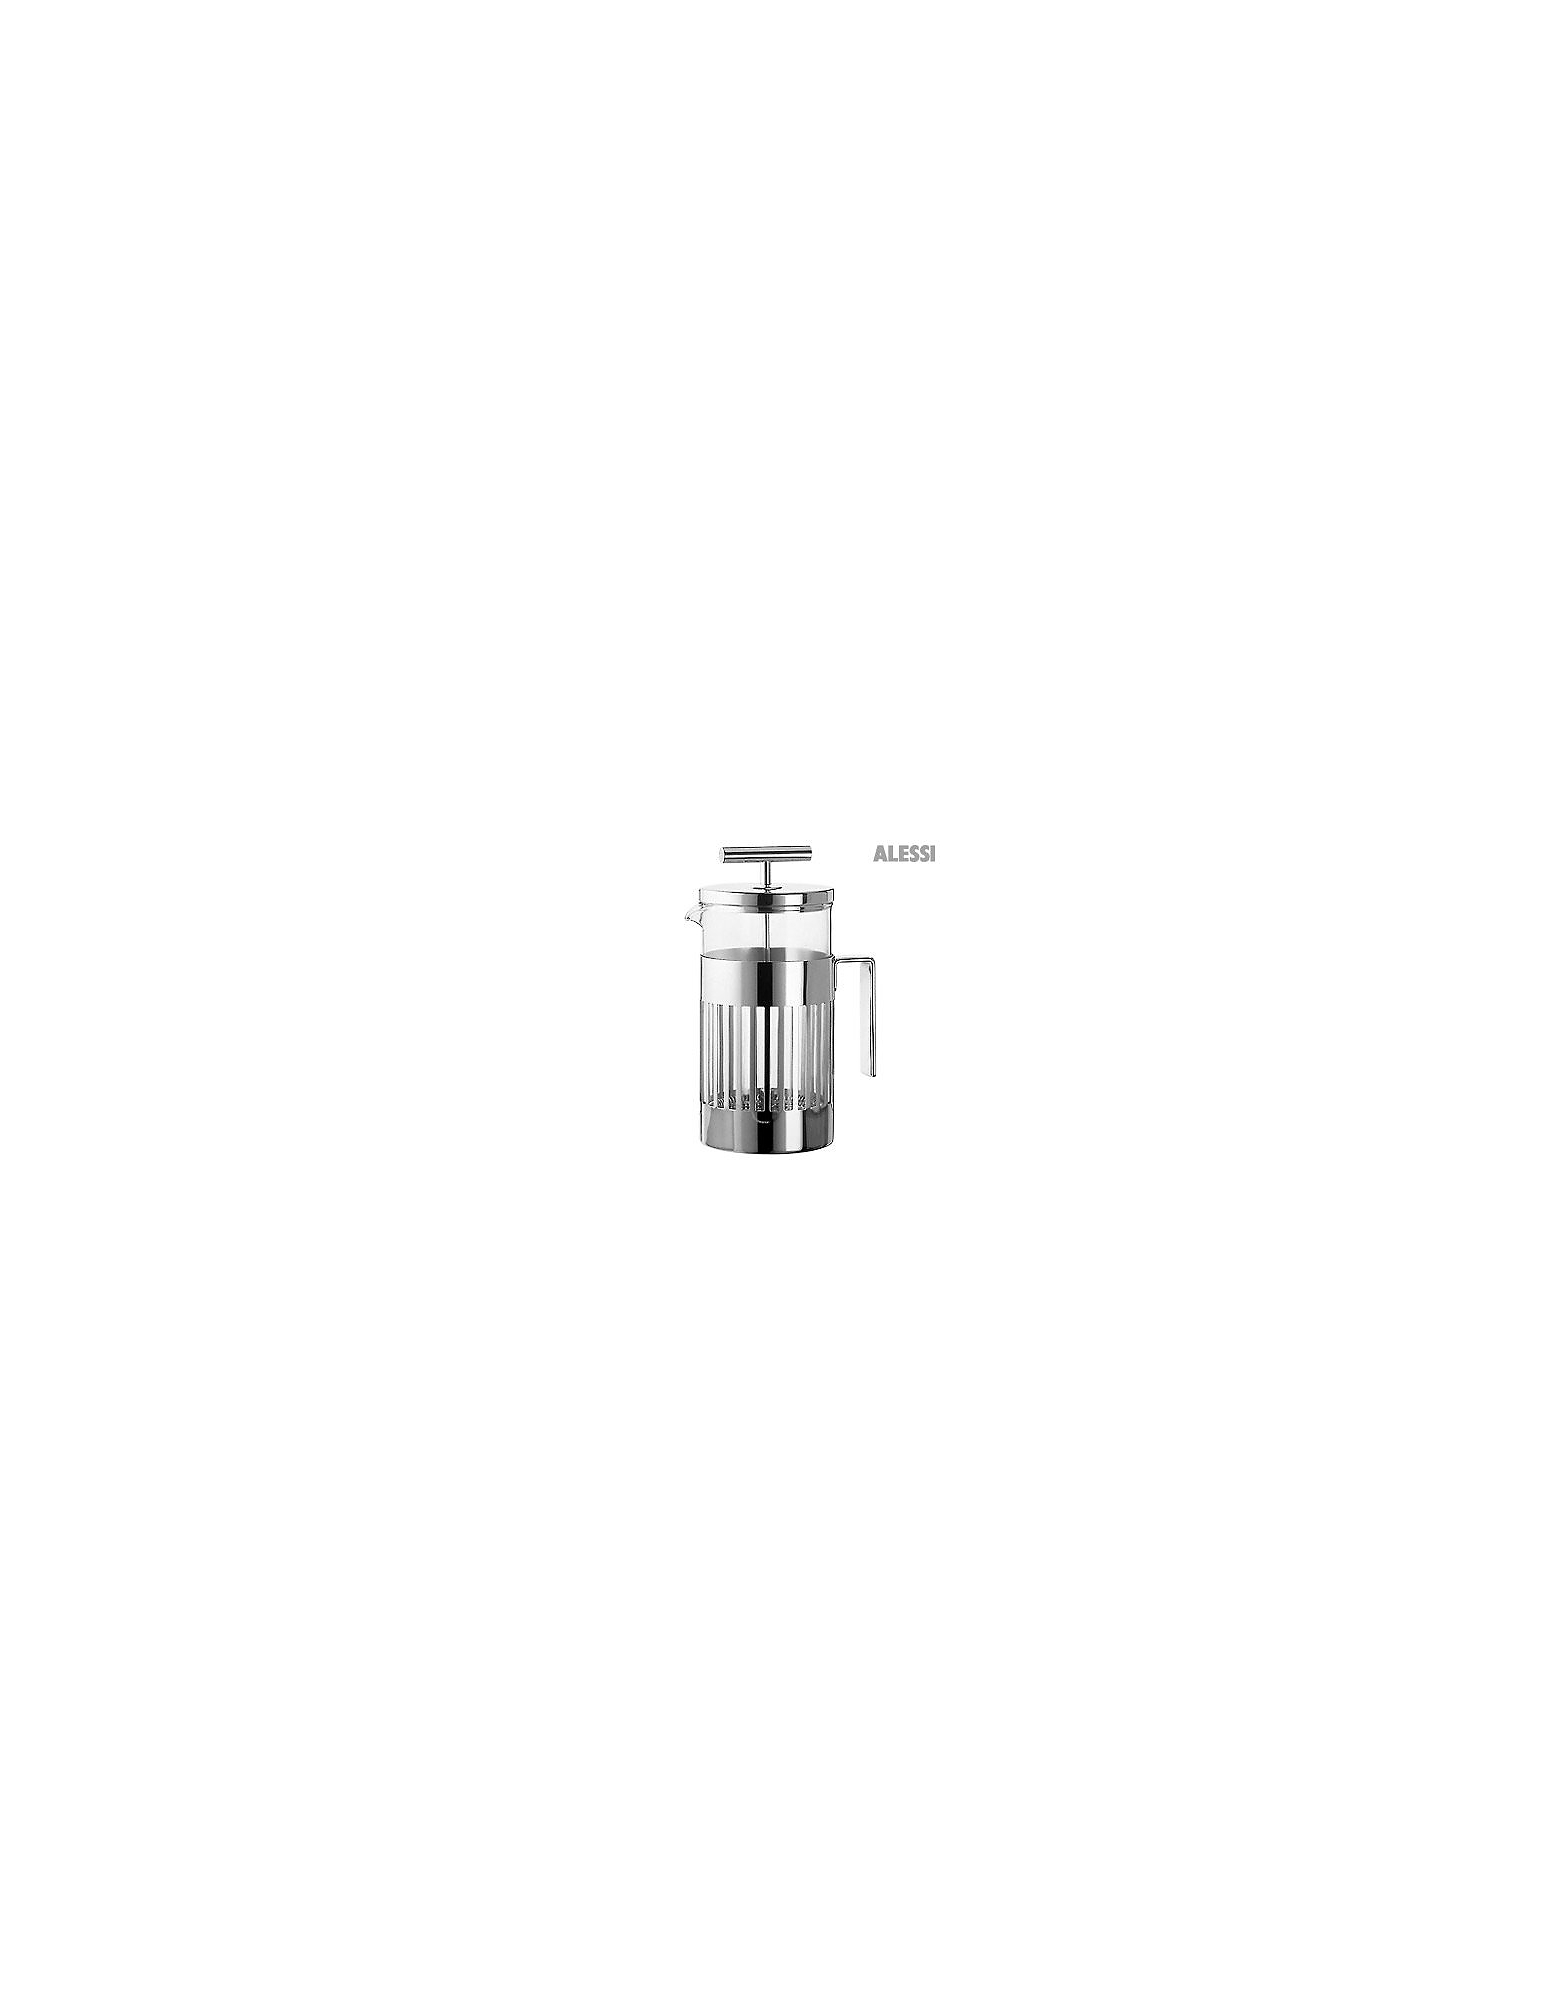 Alessi Kitchen & Dining, Press Filter Maker for 8 cups